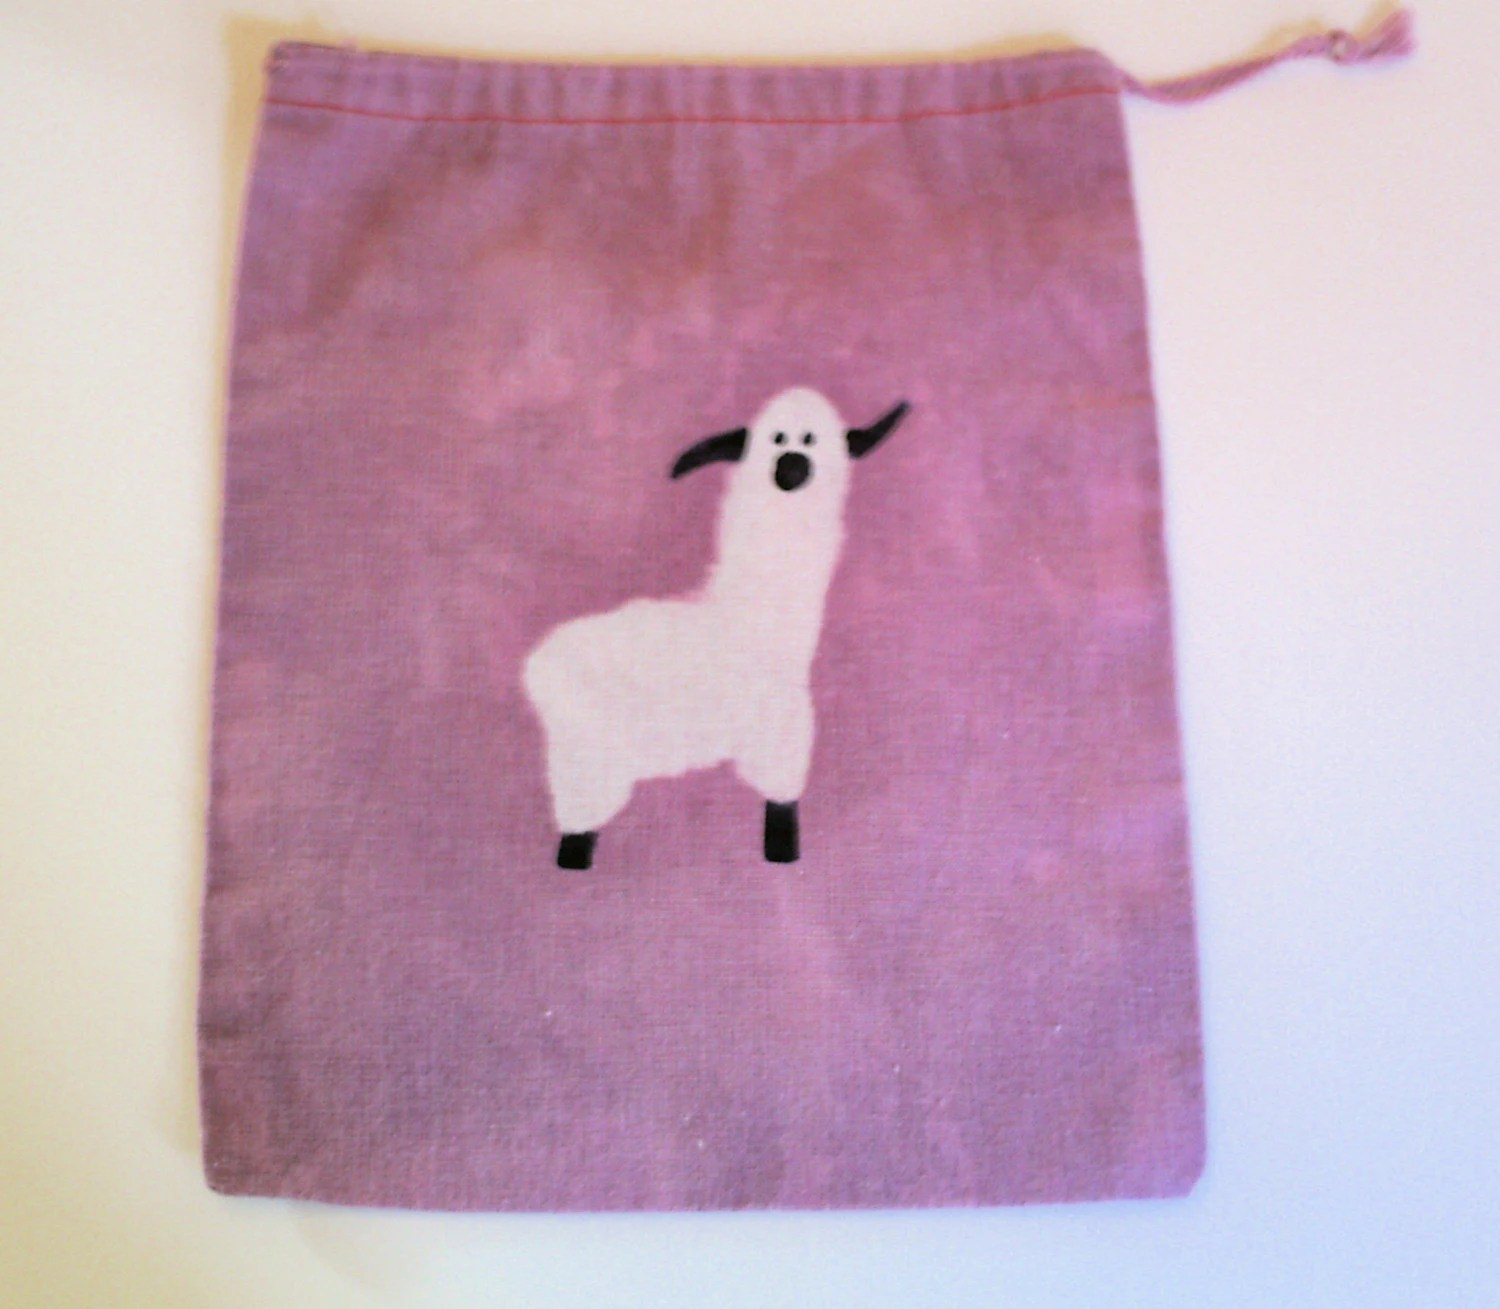 FREE SHIPPING batik ALPACA mini project or notion drawstring bag NO TEXT